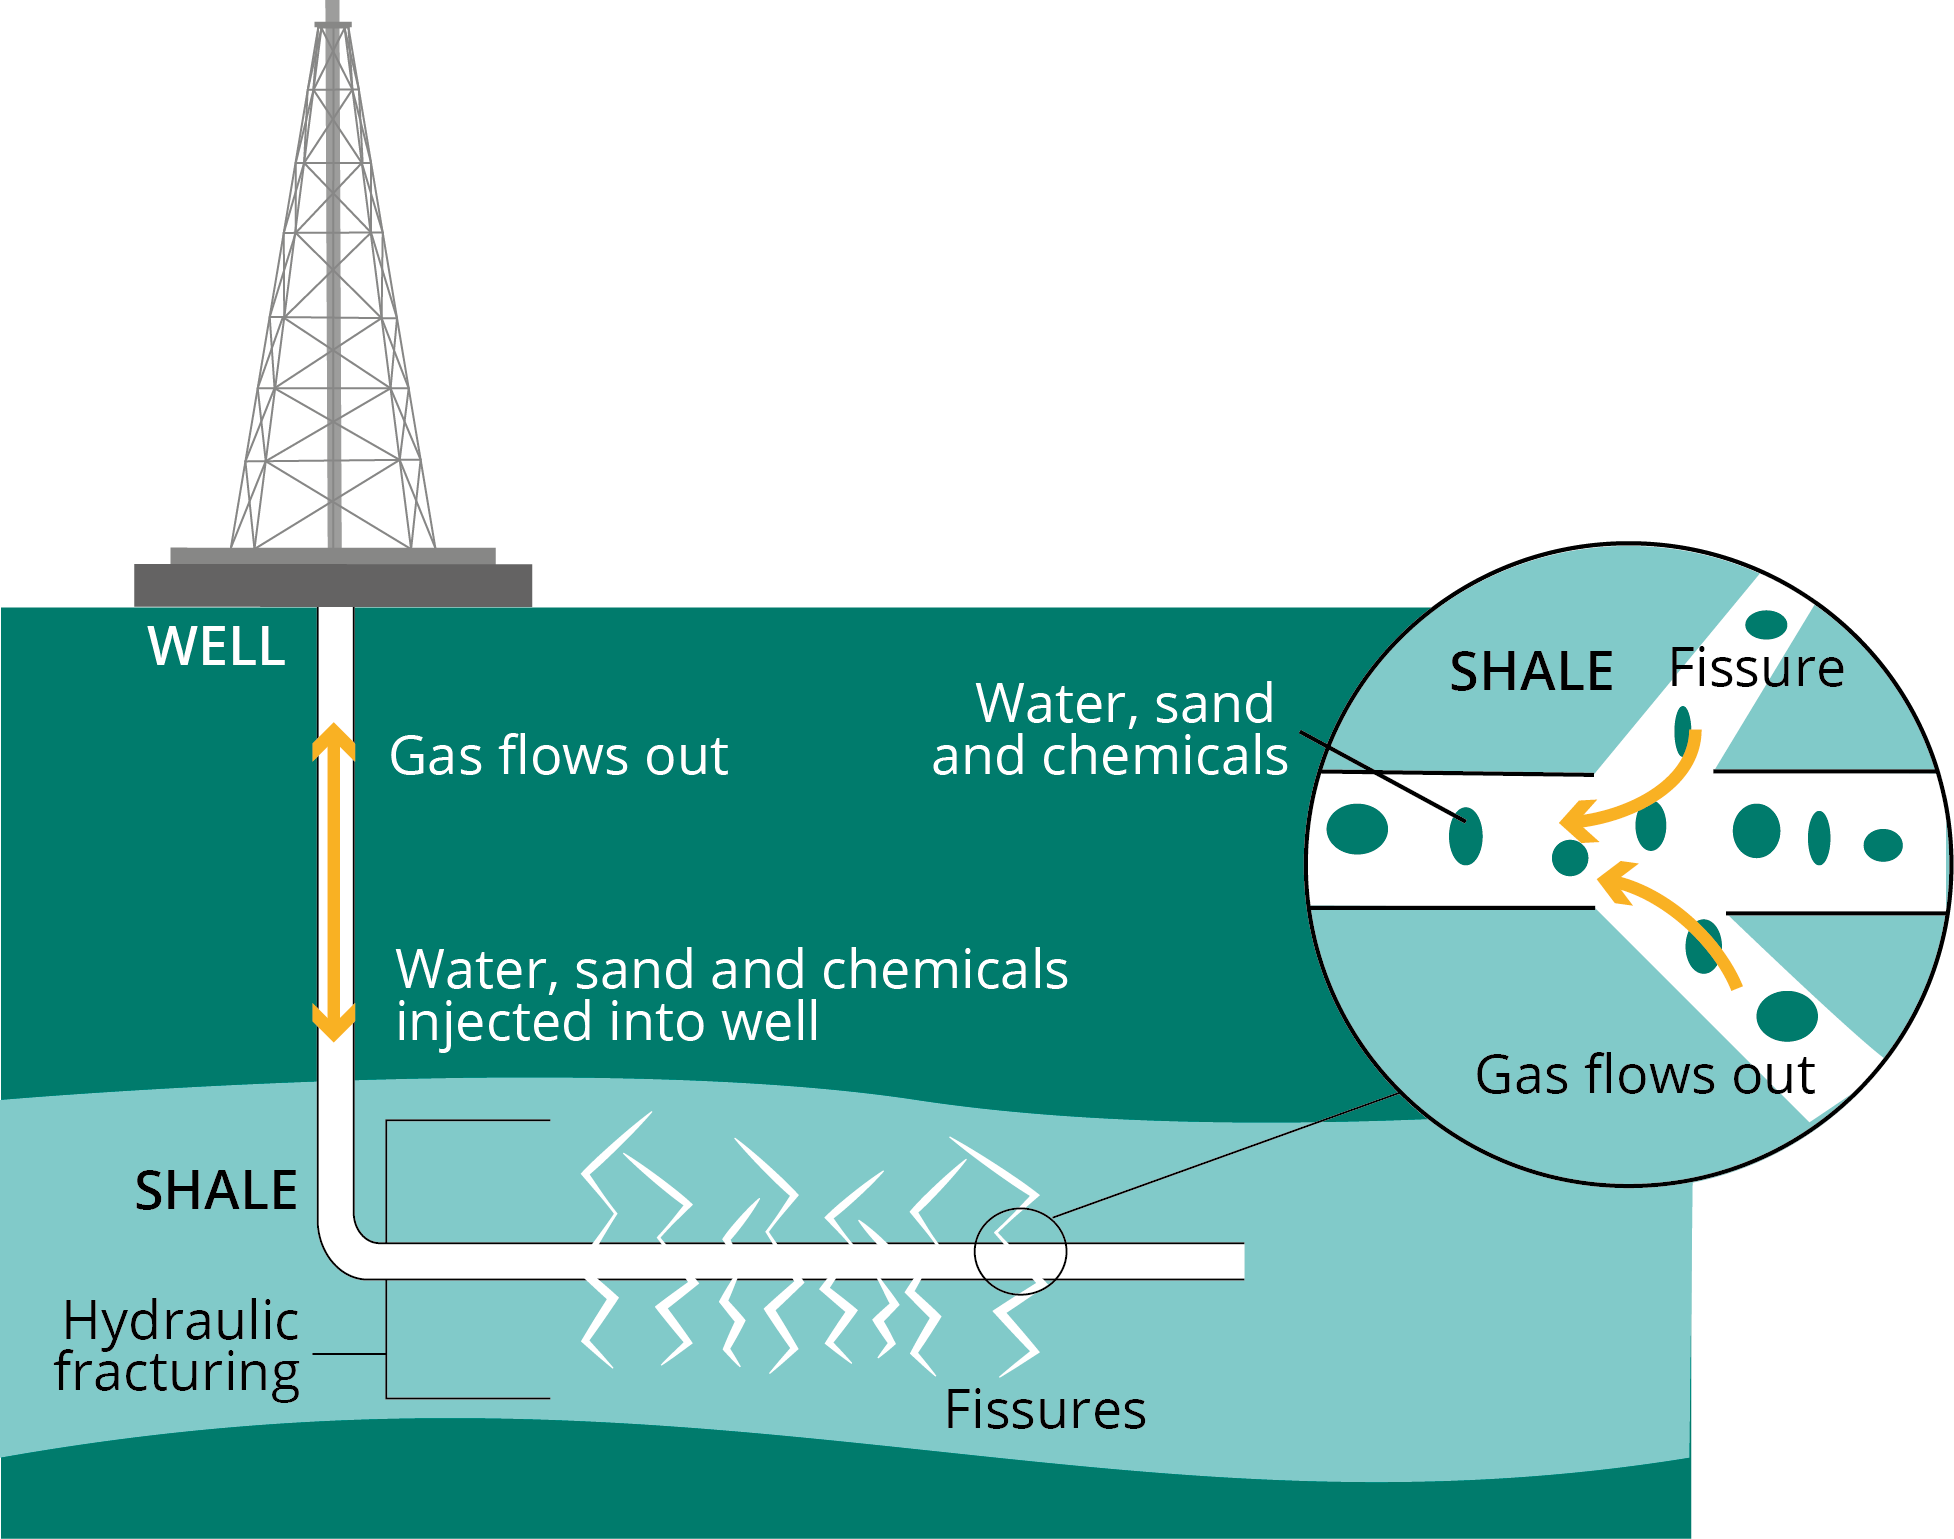 Shale gas extraction through hydraulic fracturing